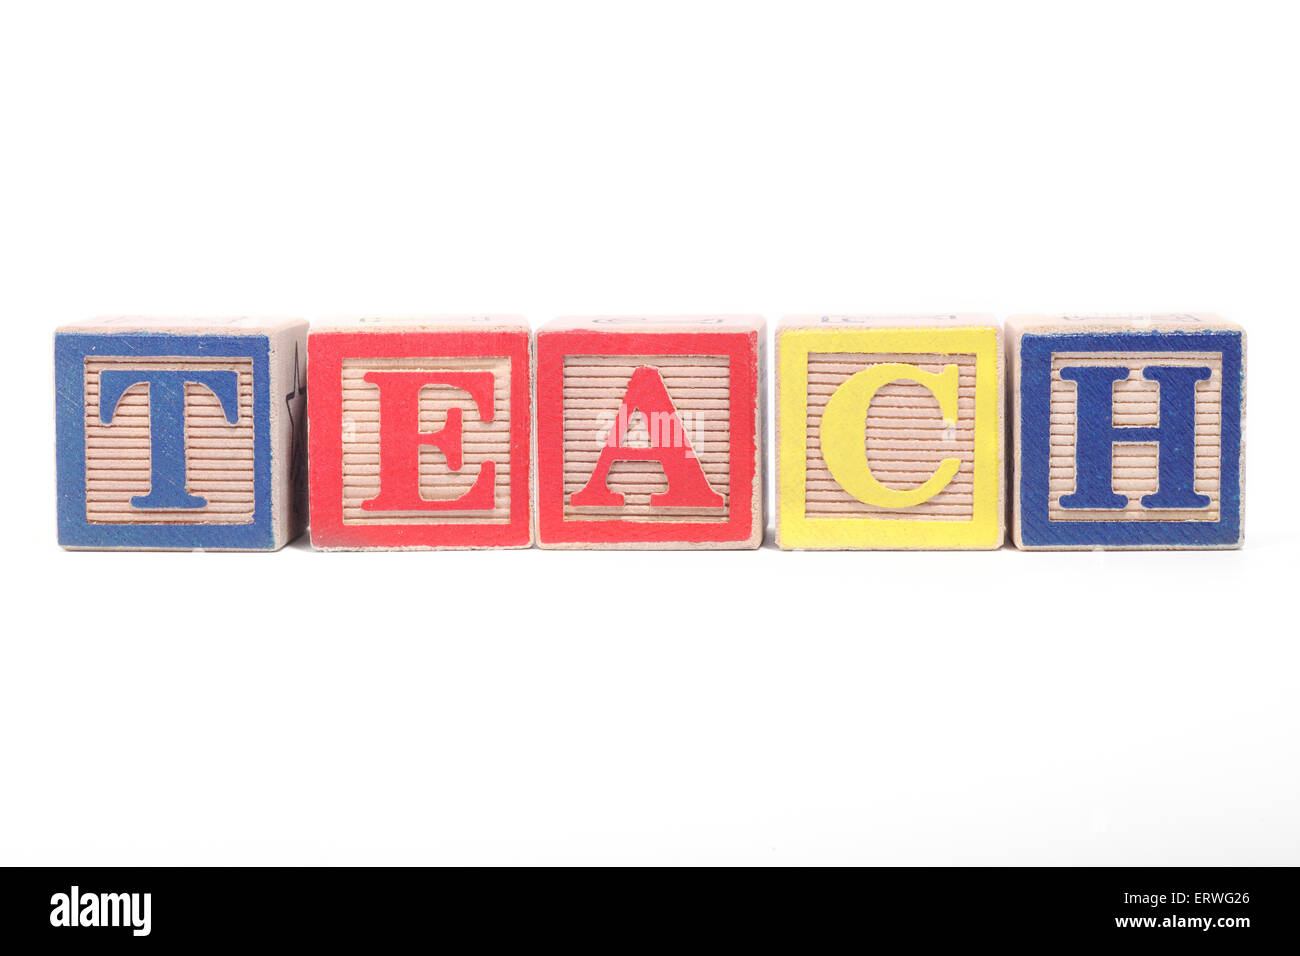 The word 'TEACH' spelt out with Children's building blocks - Stock Image